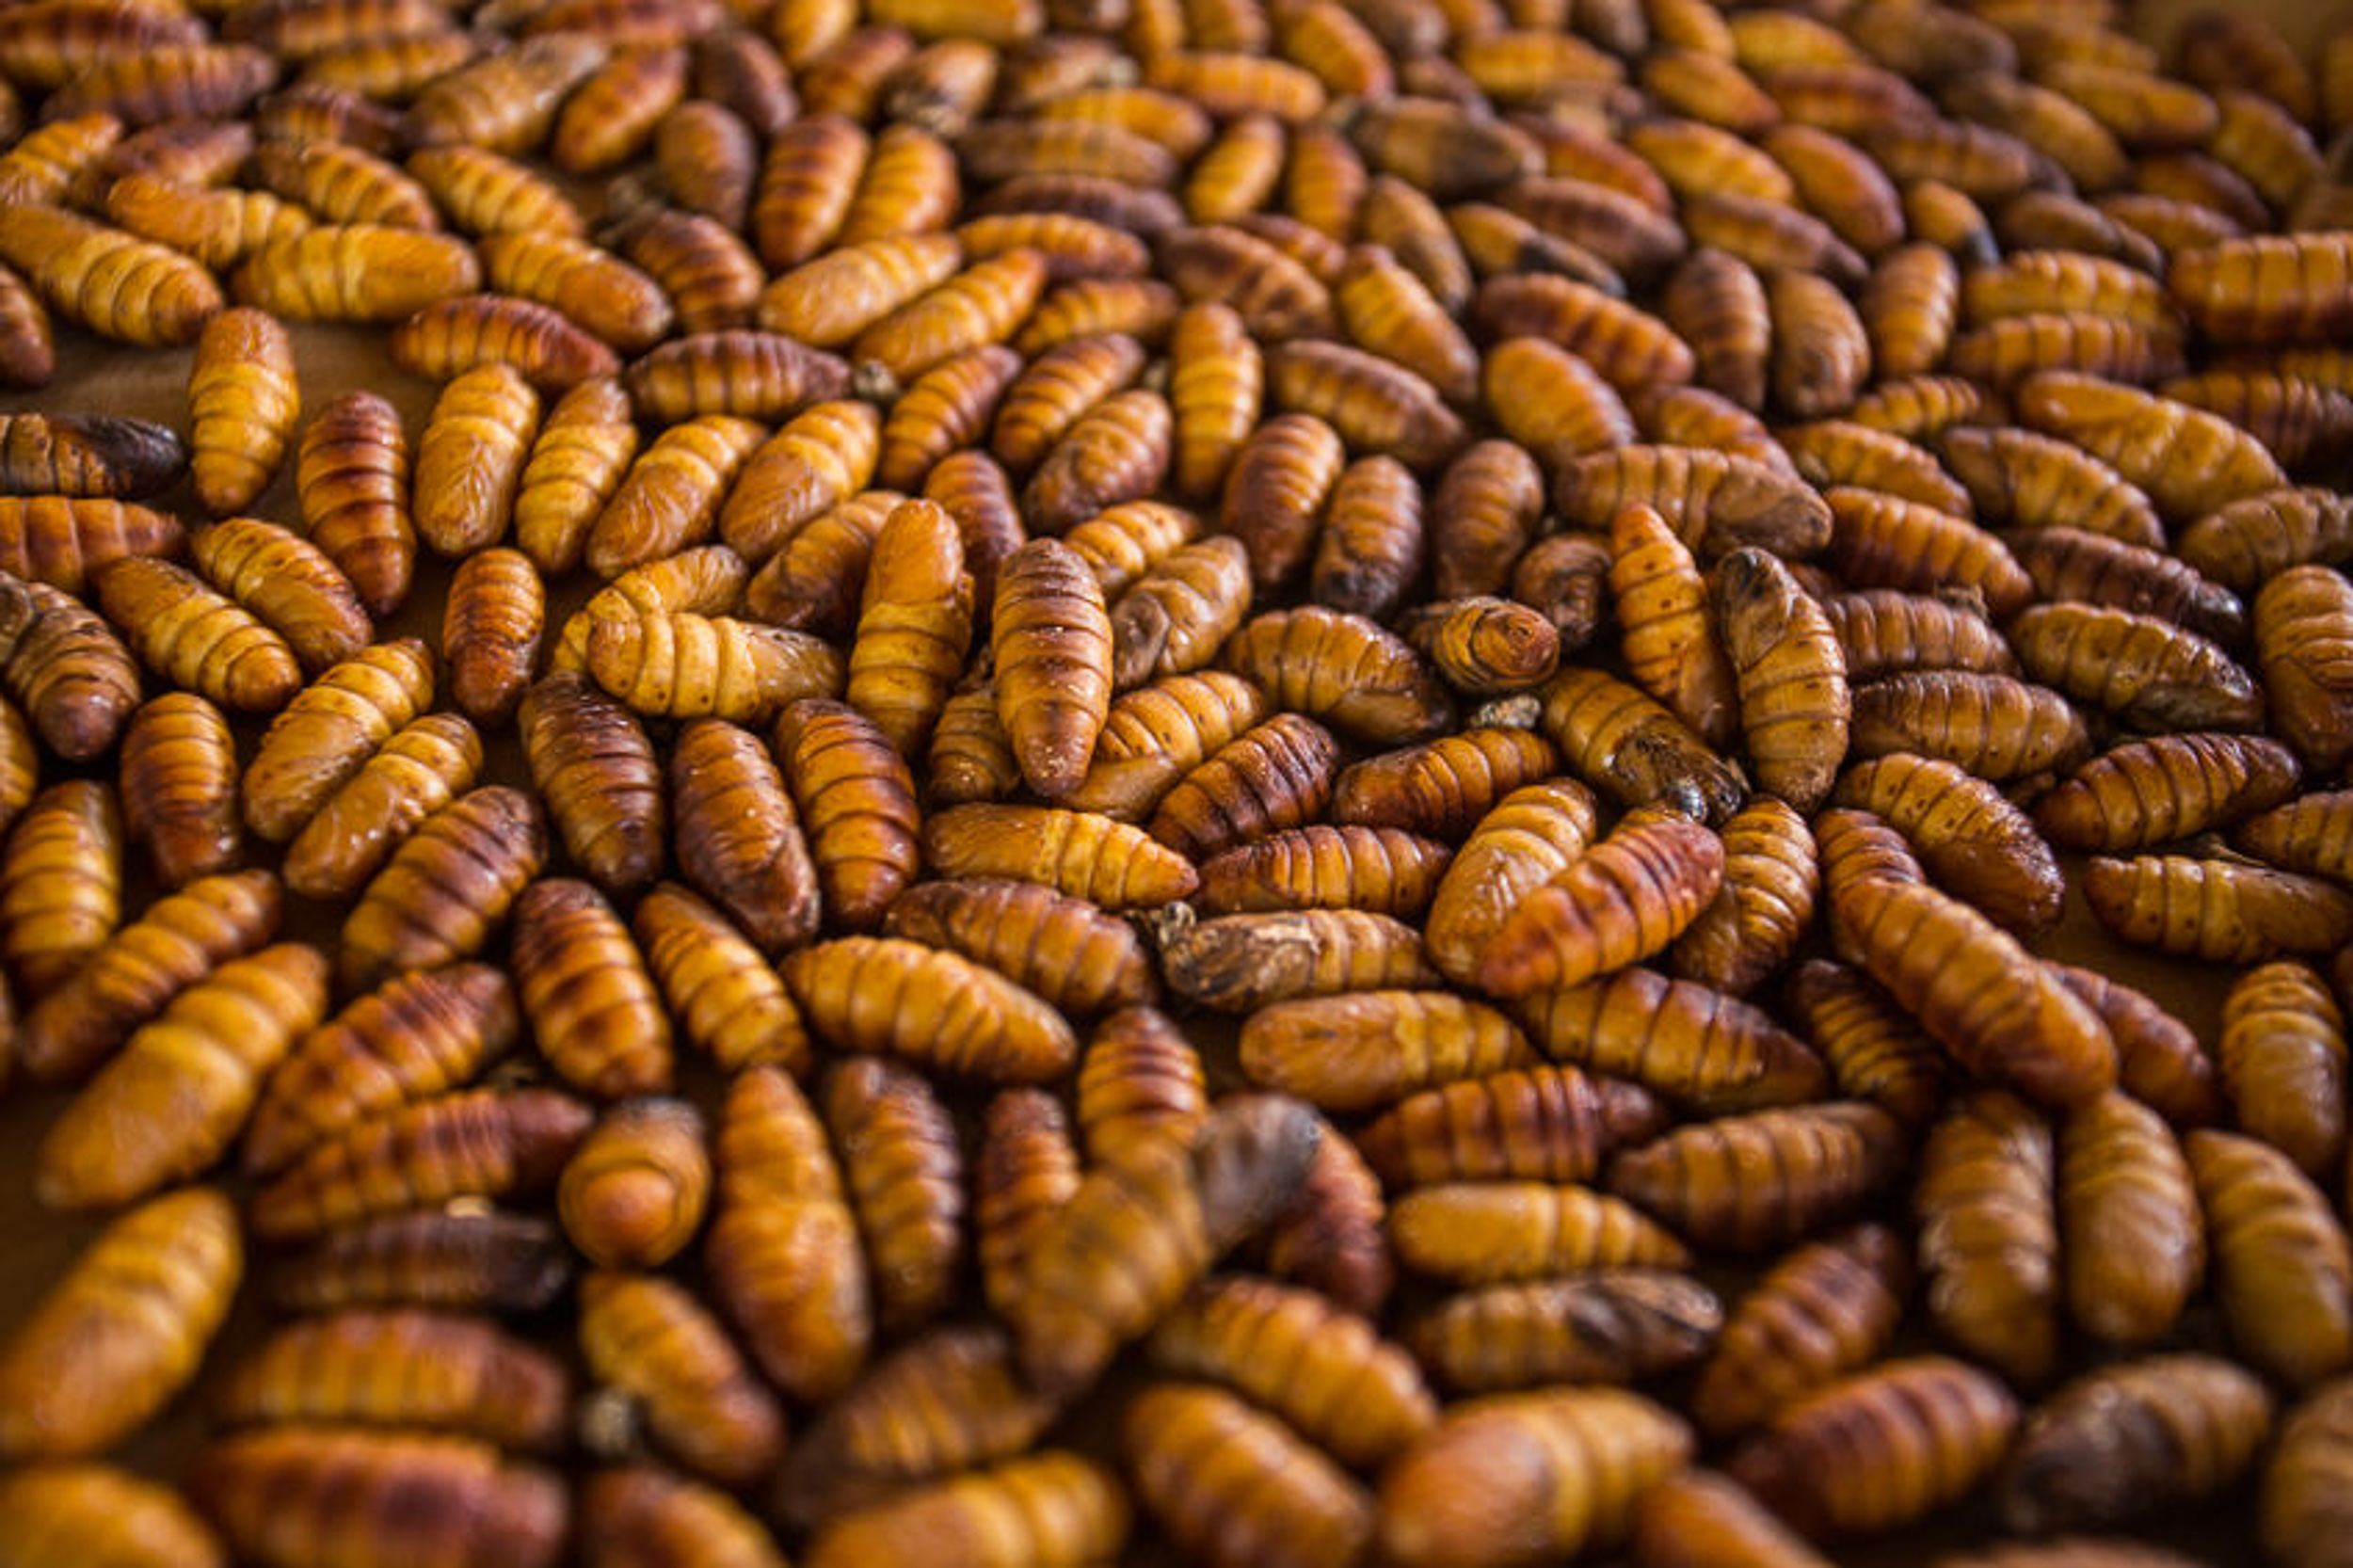 8. Steamed Silkworm Larvae - 번데기 (beondegi)